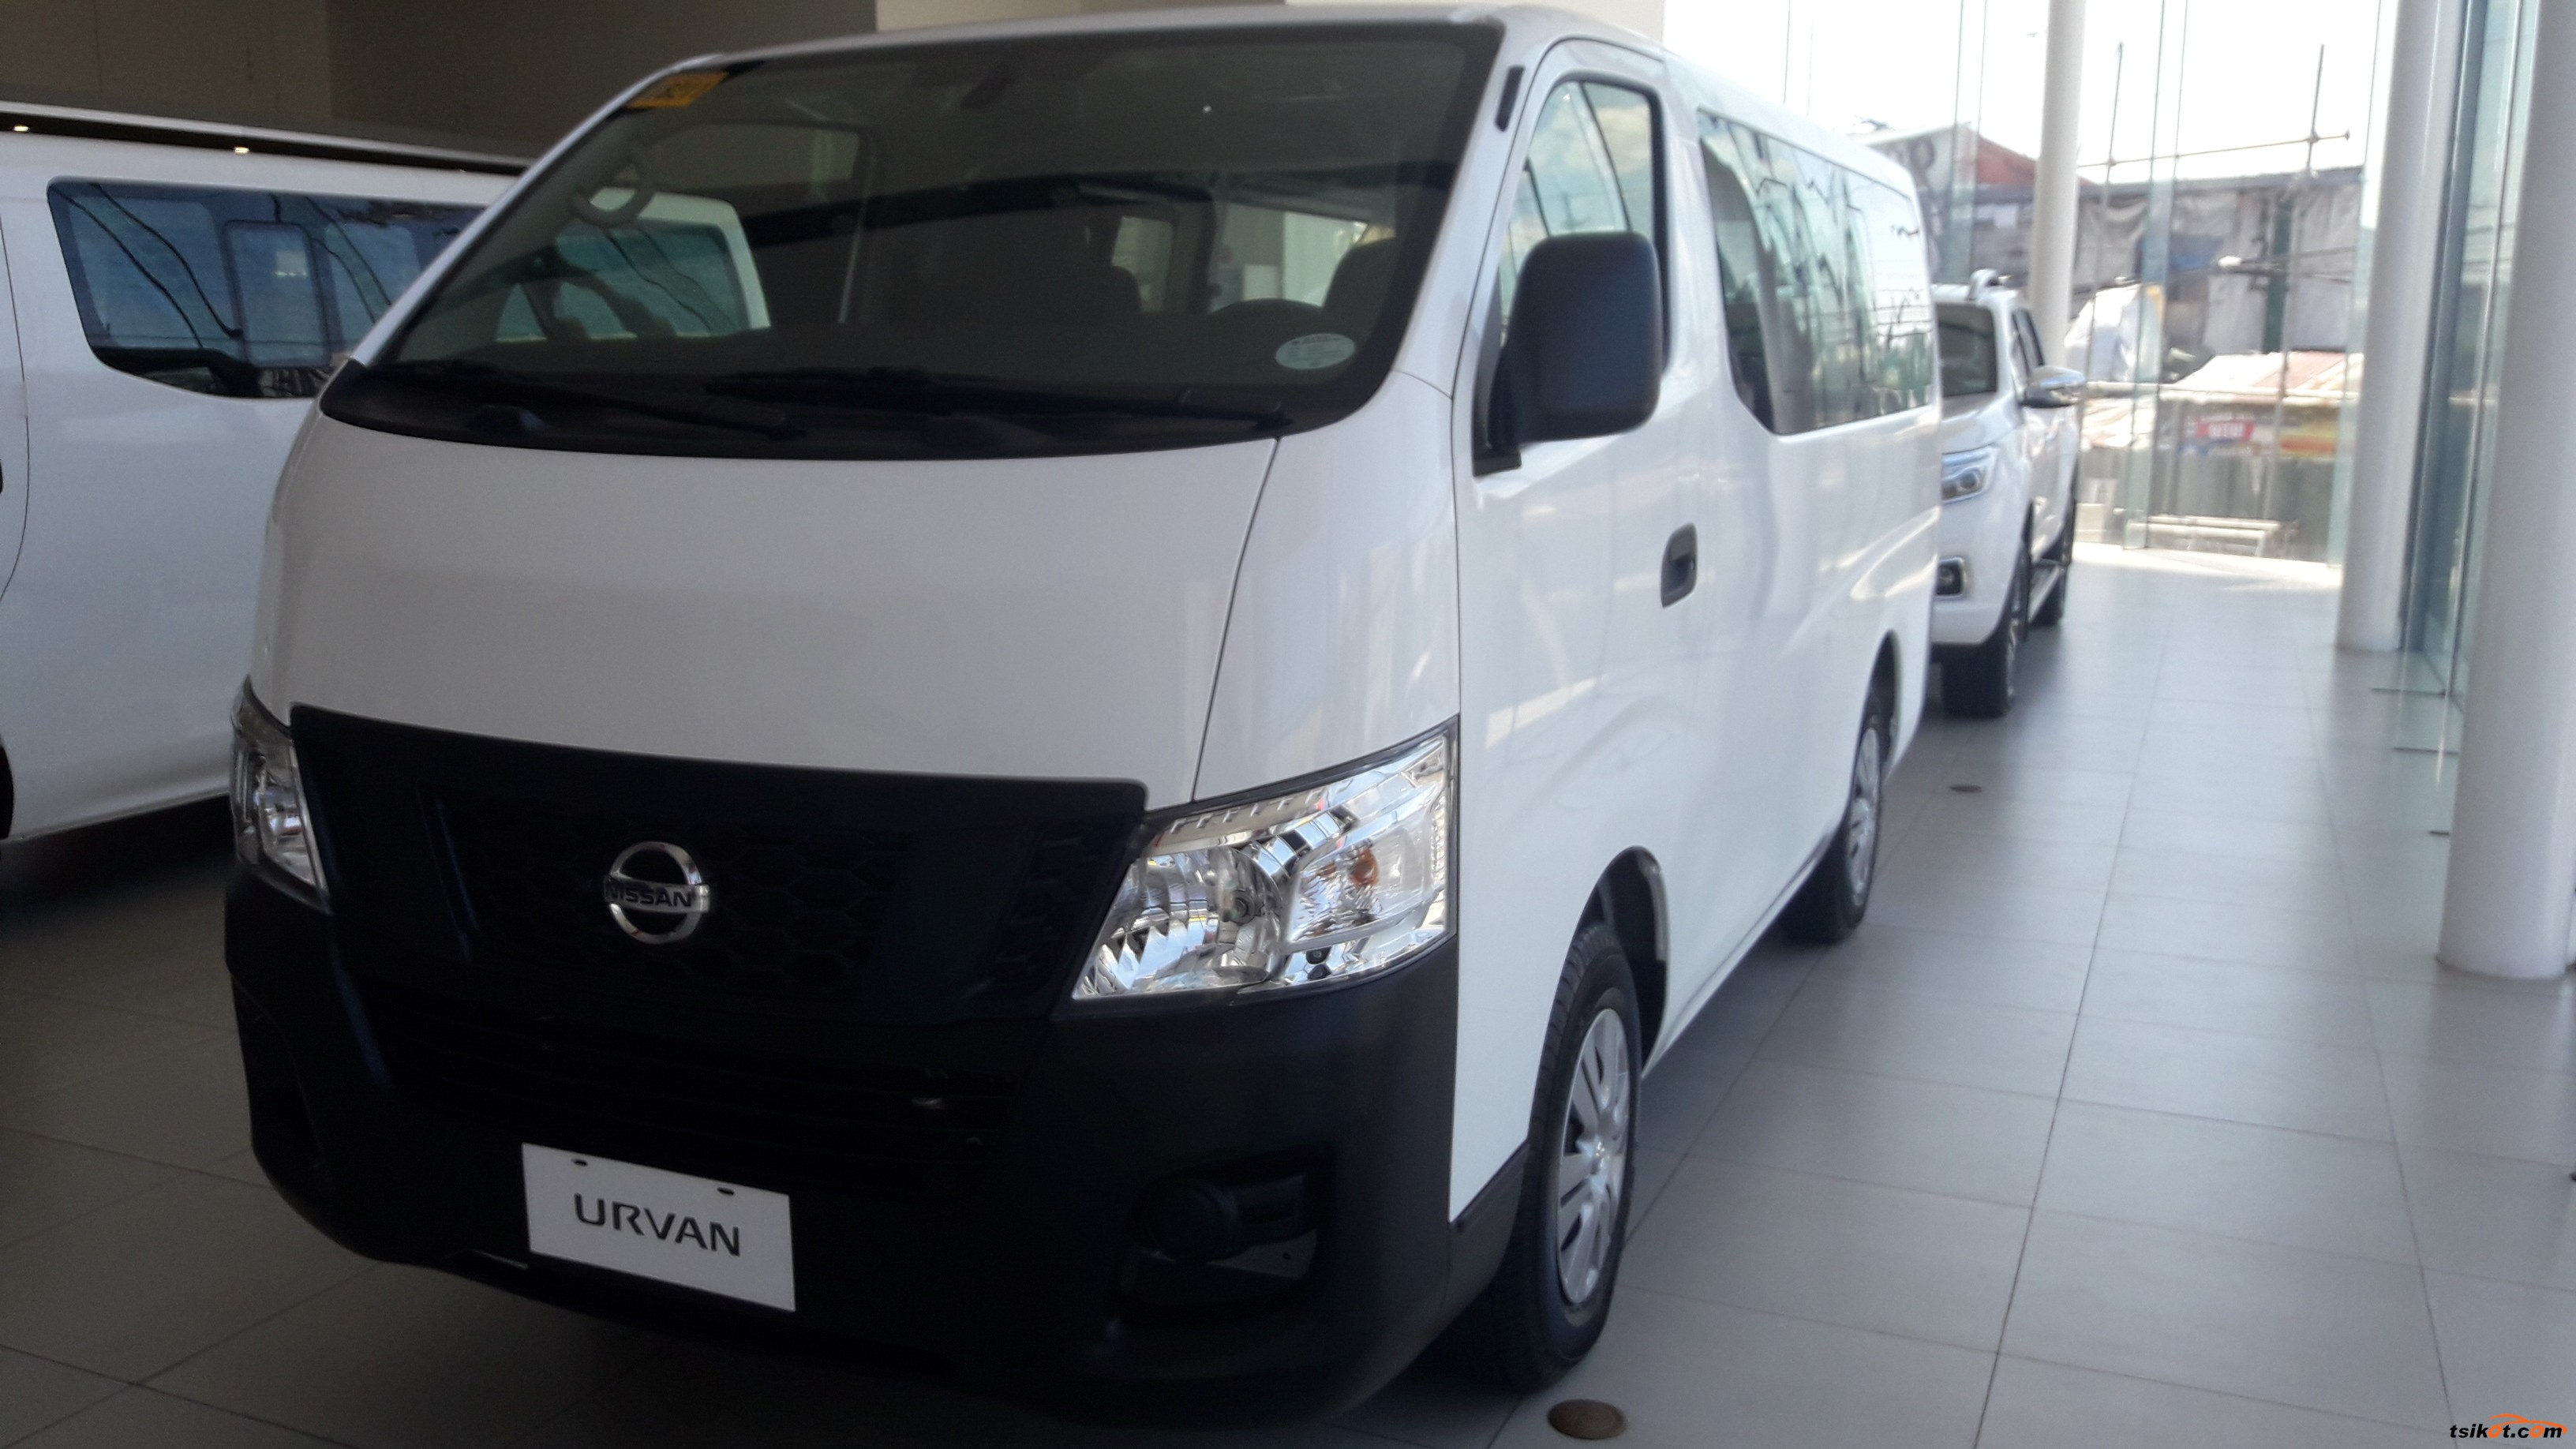 Nissan Urvan 2017 - Car for Sale Metro Manila